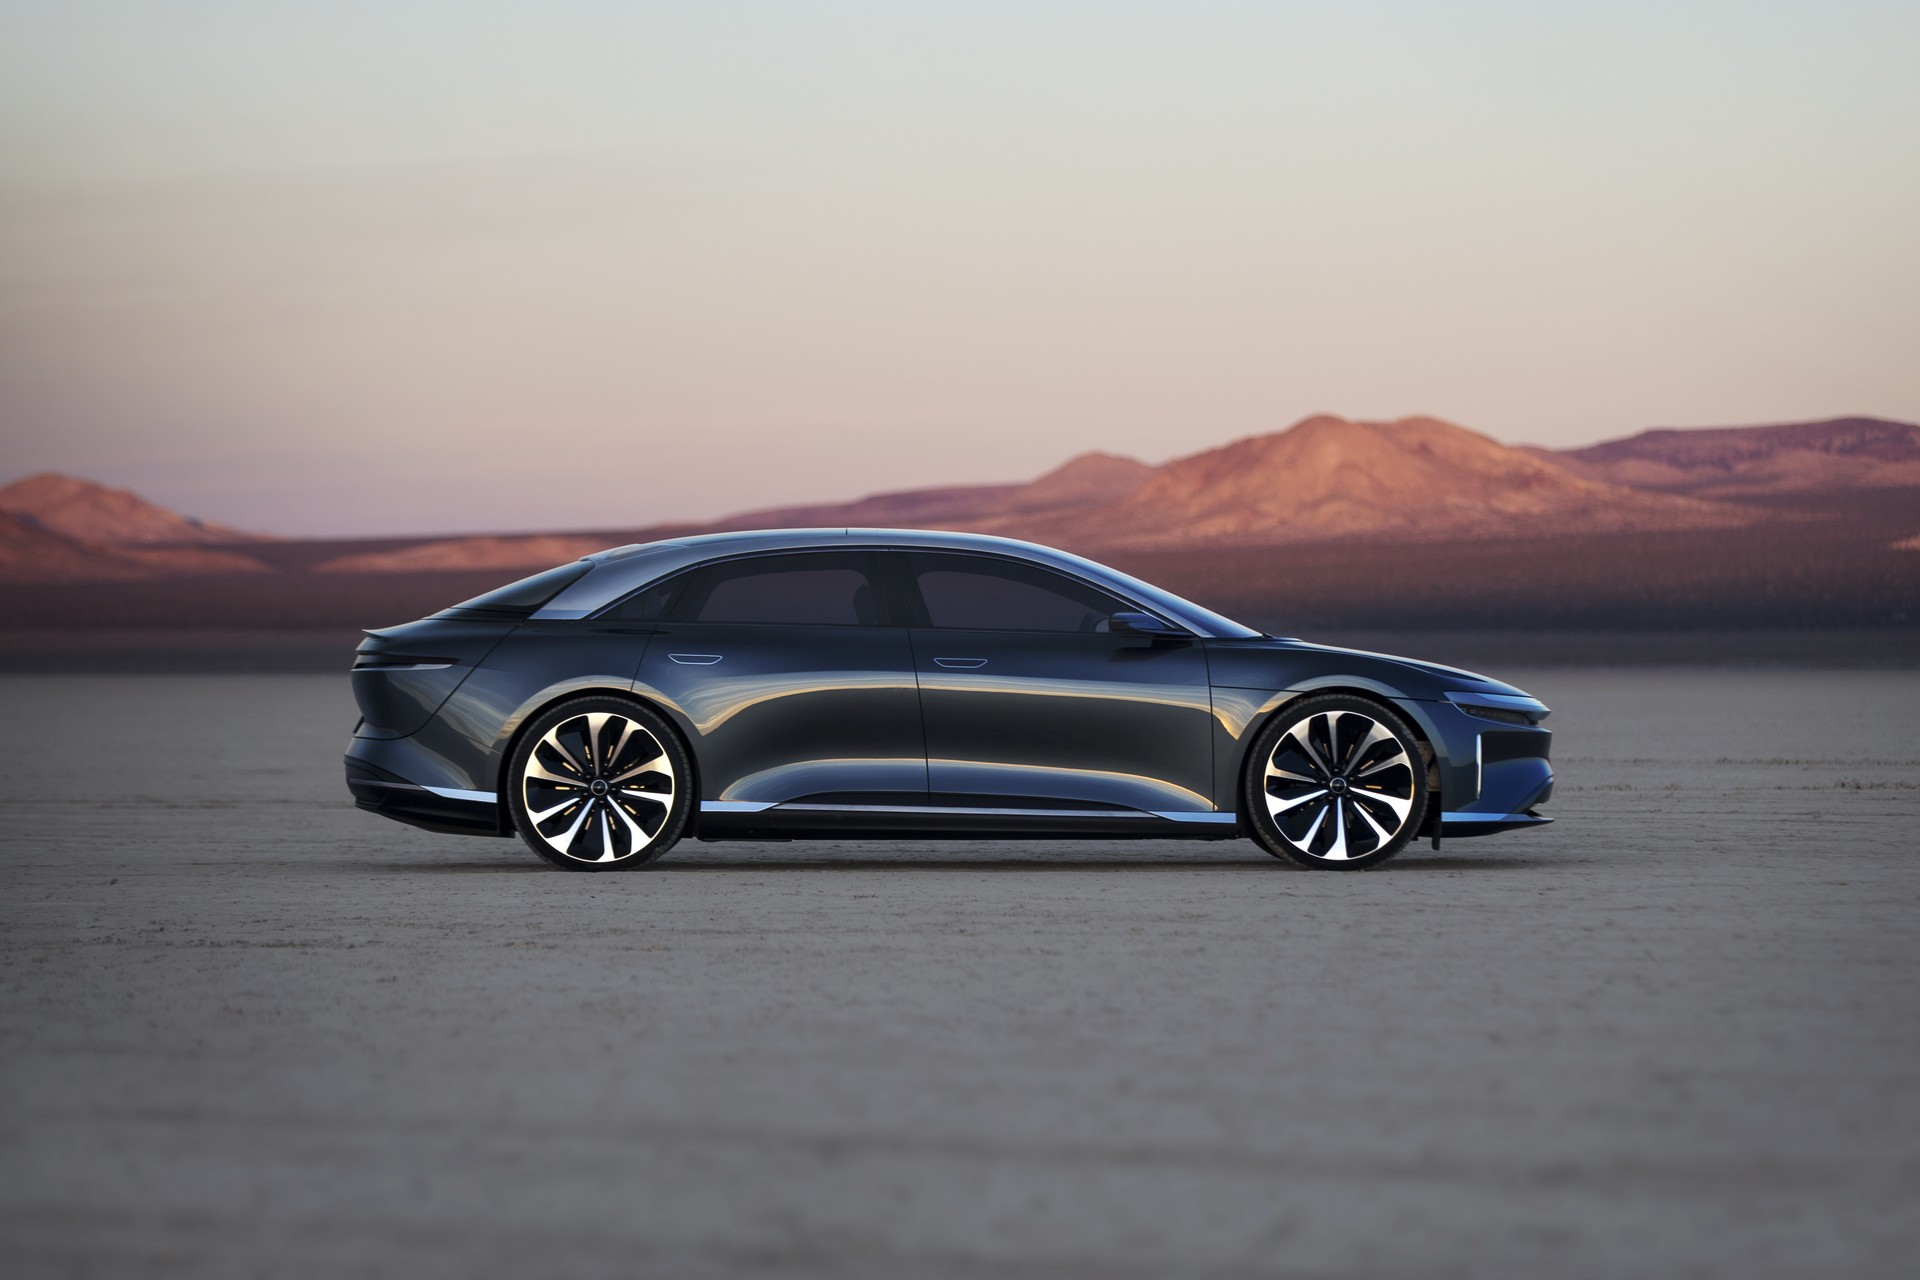 Saudi investment fund takes $1 billion stake in Lucid Motors